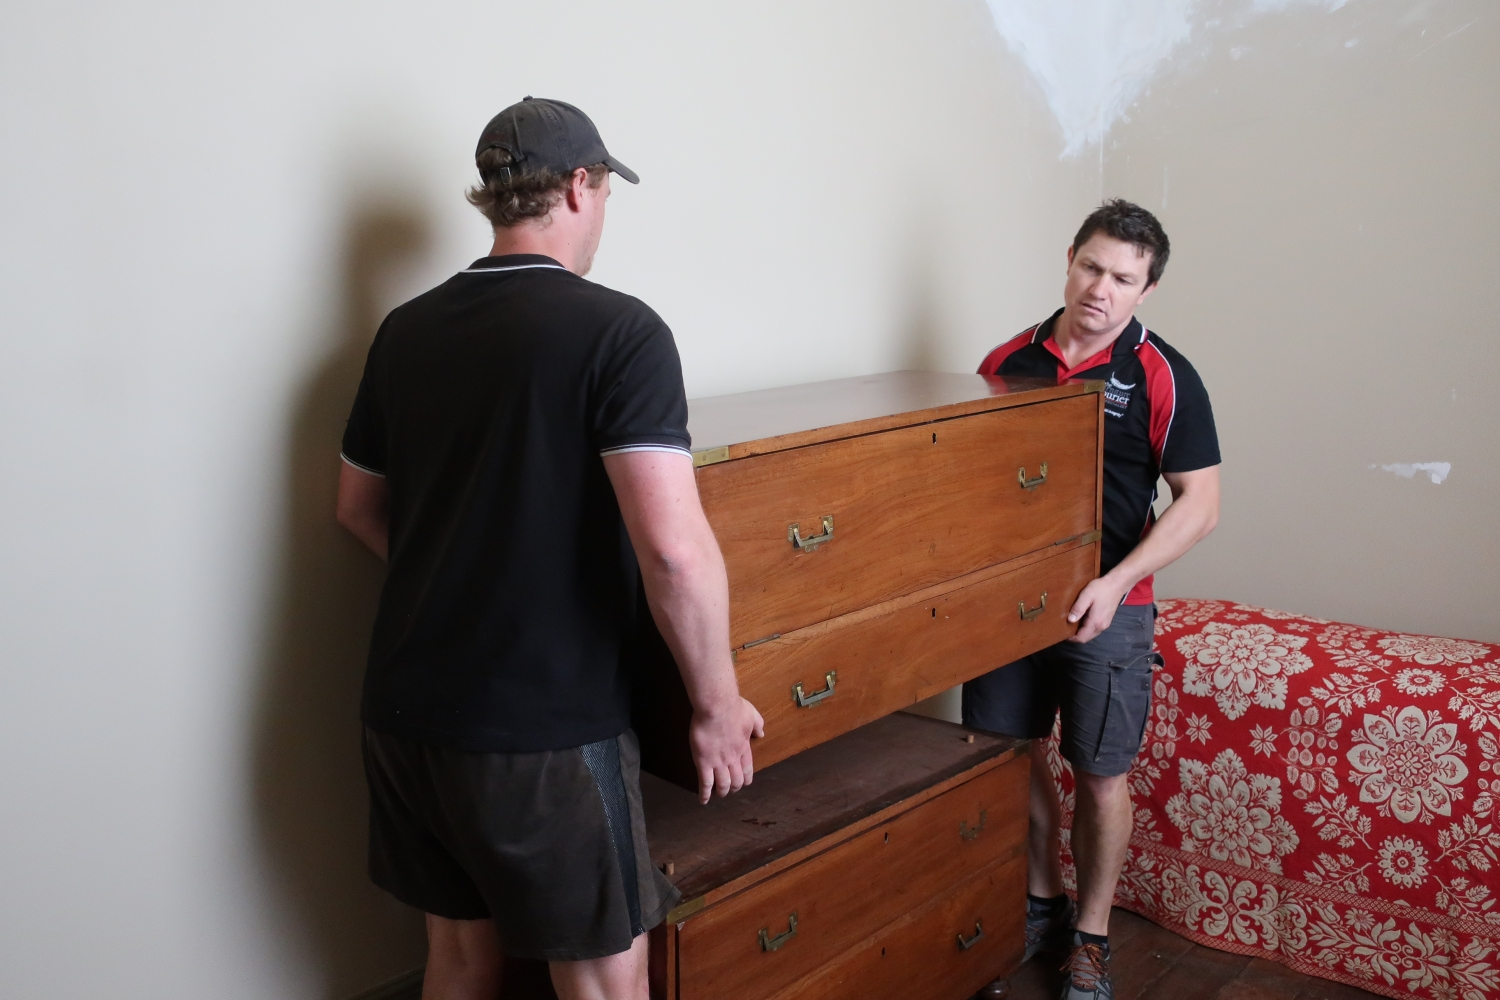 Two men carrying wooden furniture.